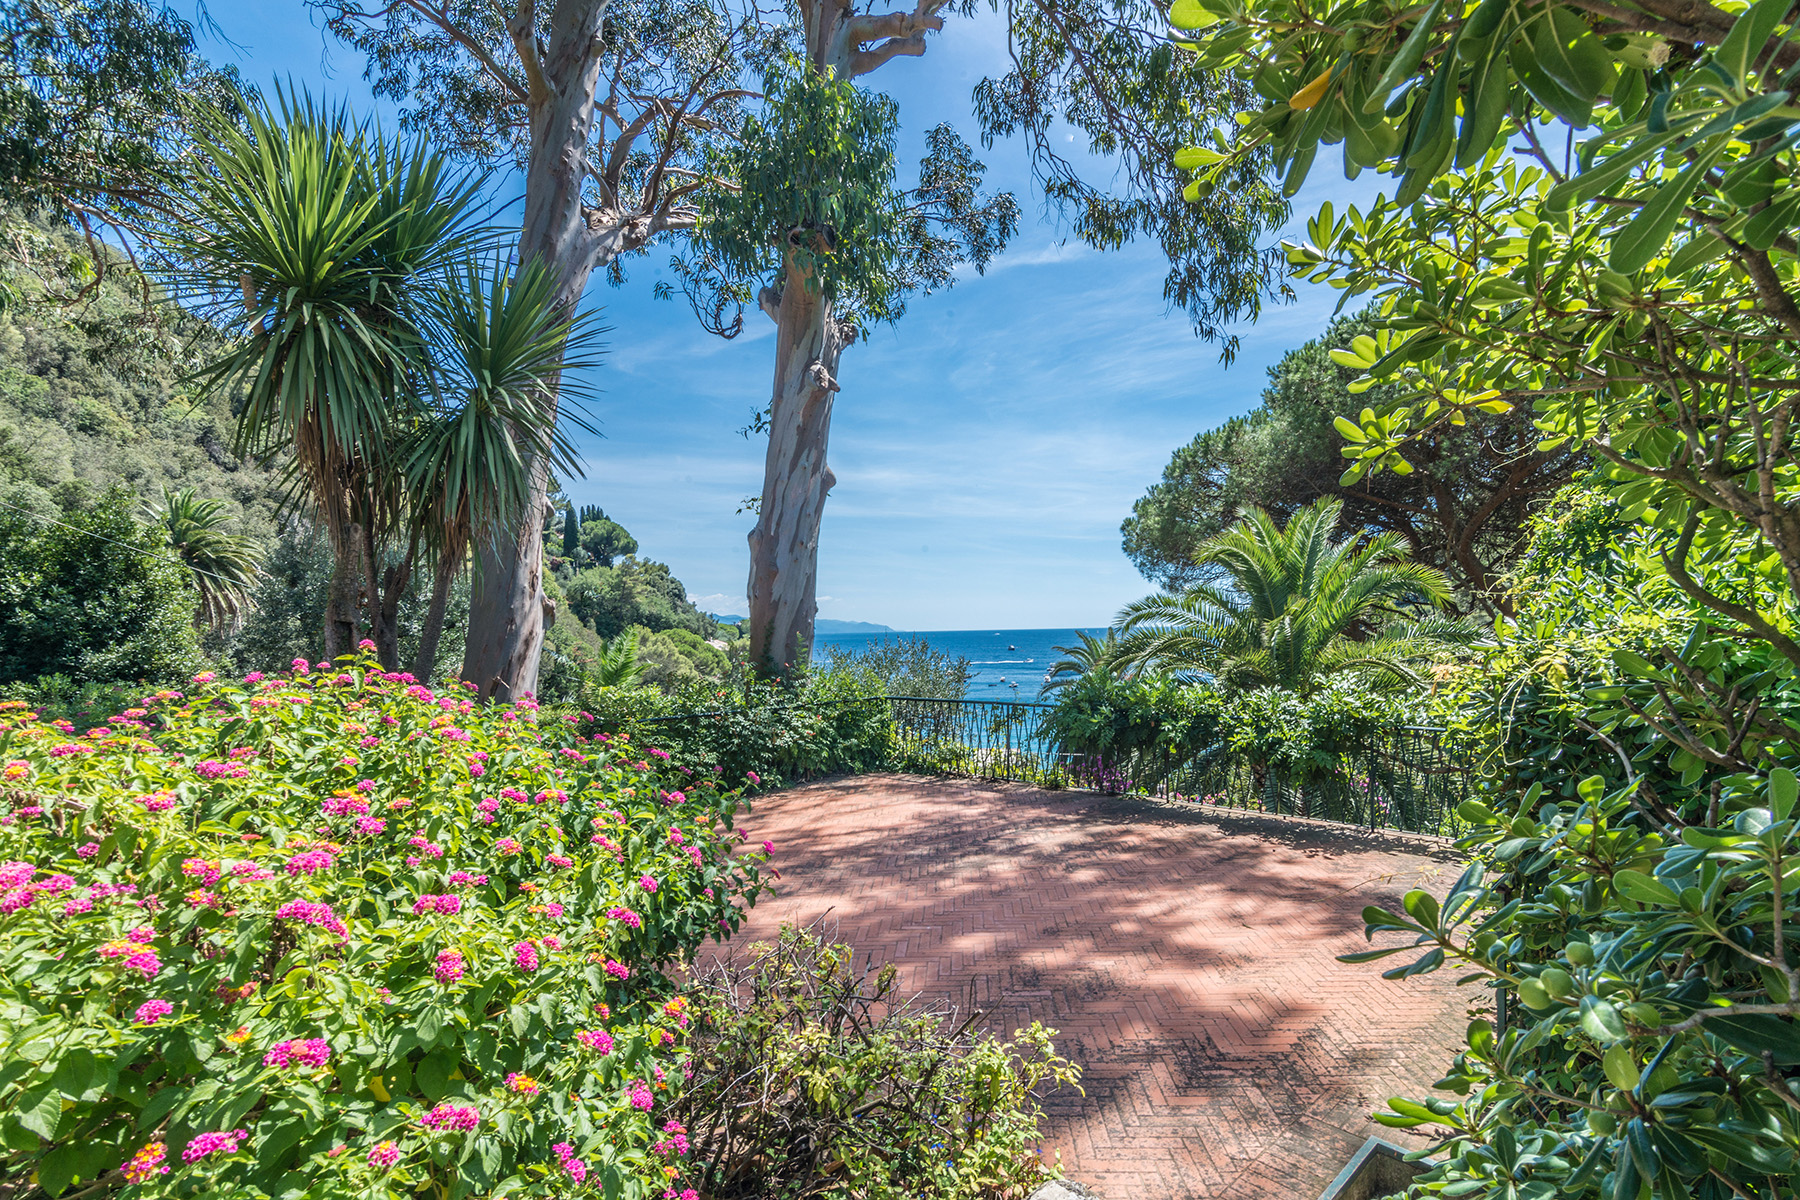 Single Family Home for Sale at Magnifica villa a Paraggi nel parco di Portofino via di Paraggi Portofino, 16038 Italy